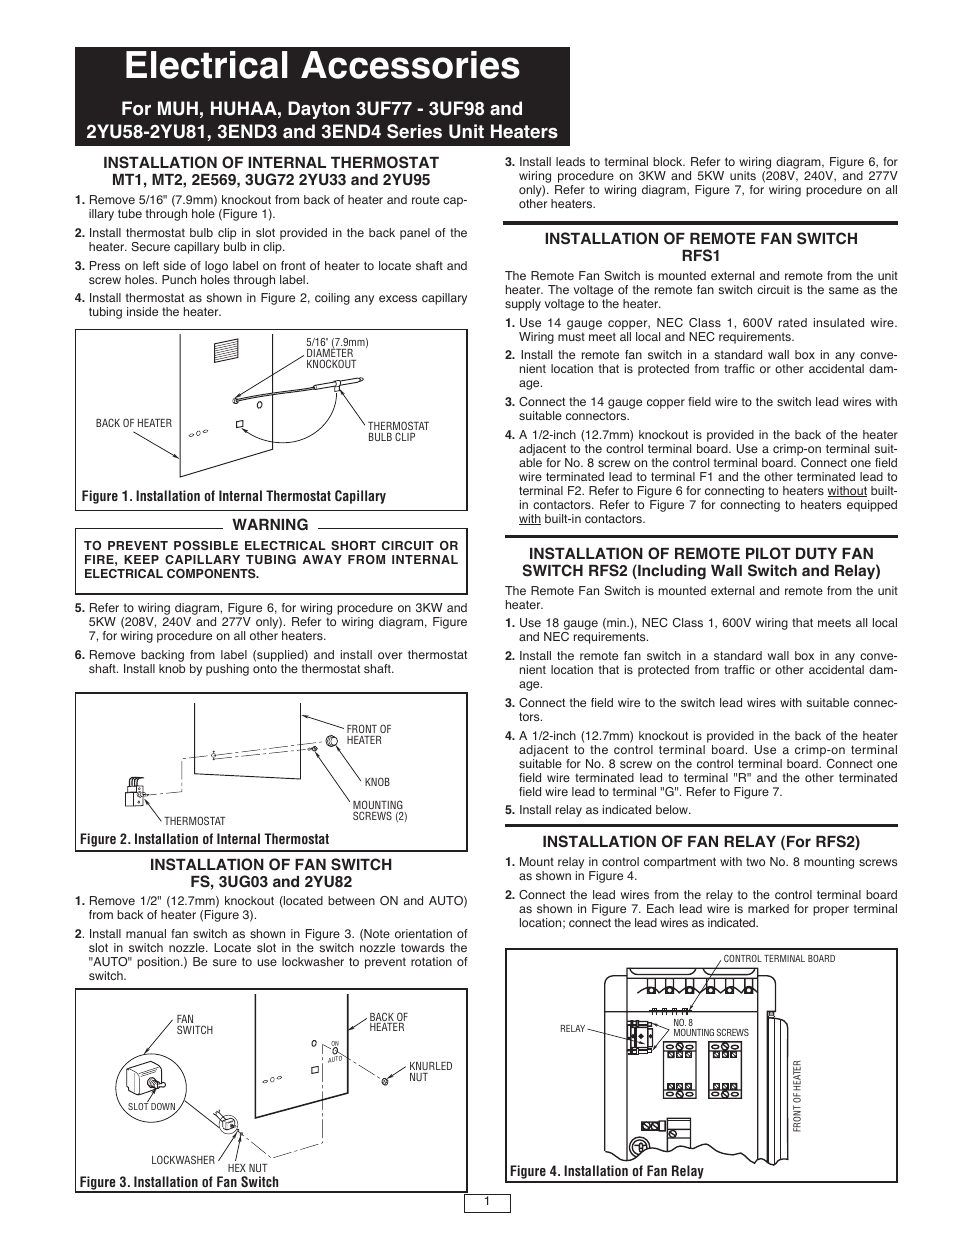 qmark muh horizontal _ downflow unit heaters page1 qmark muh horizontal downflow unit heaters user manual 2 pages unit heater wiring diagram at bayanpartner.co